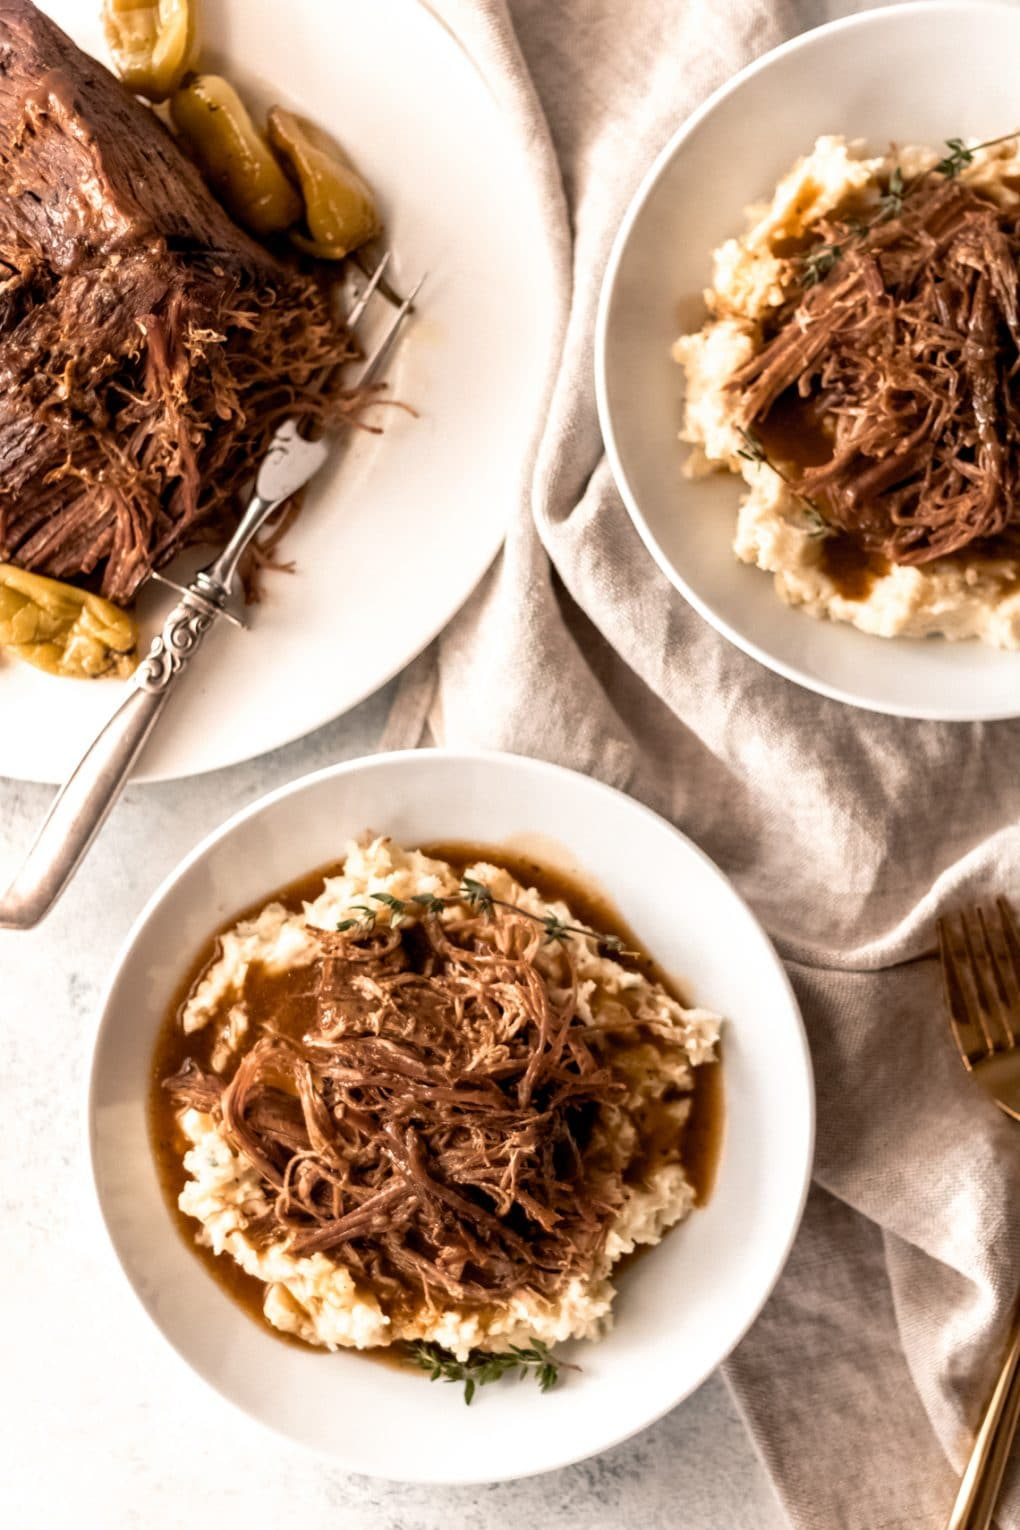 Two white bowls with mashed potatoes topped with shredded Mississippi pot roast. The Mississippi pot roast is on a white serving platter with a silver carving knife to the left of the bowls.